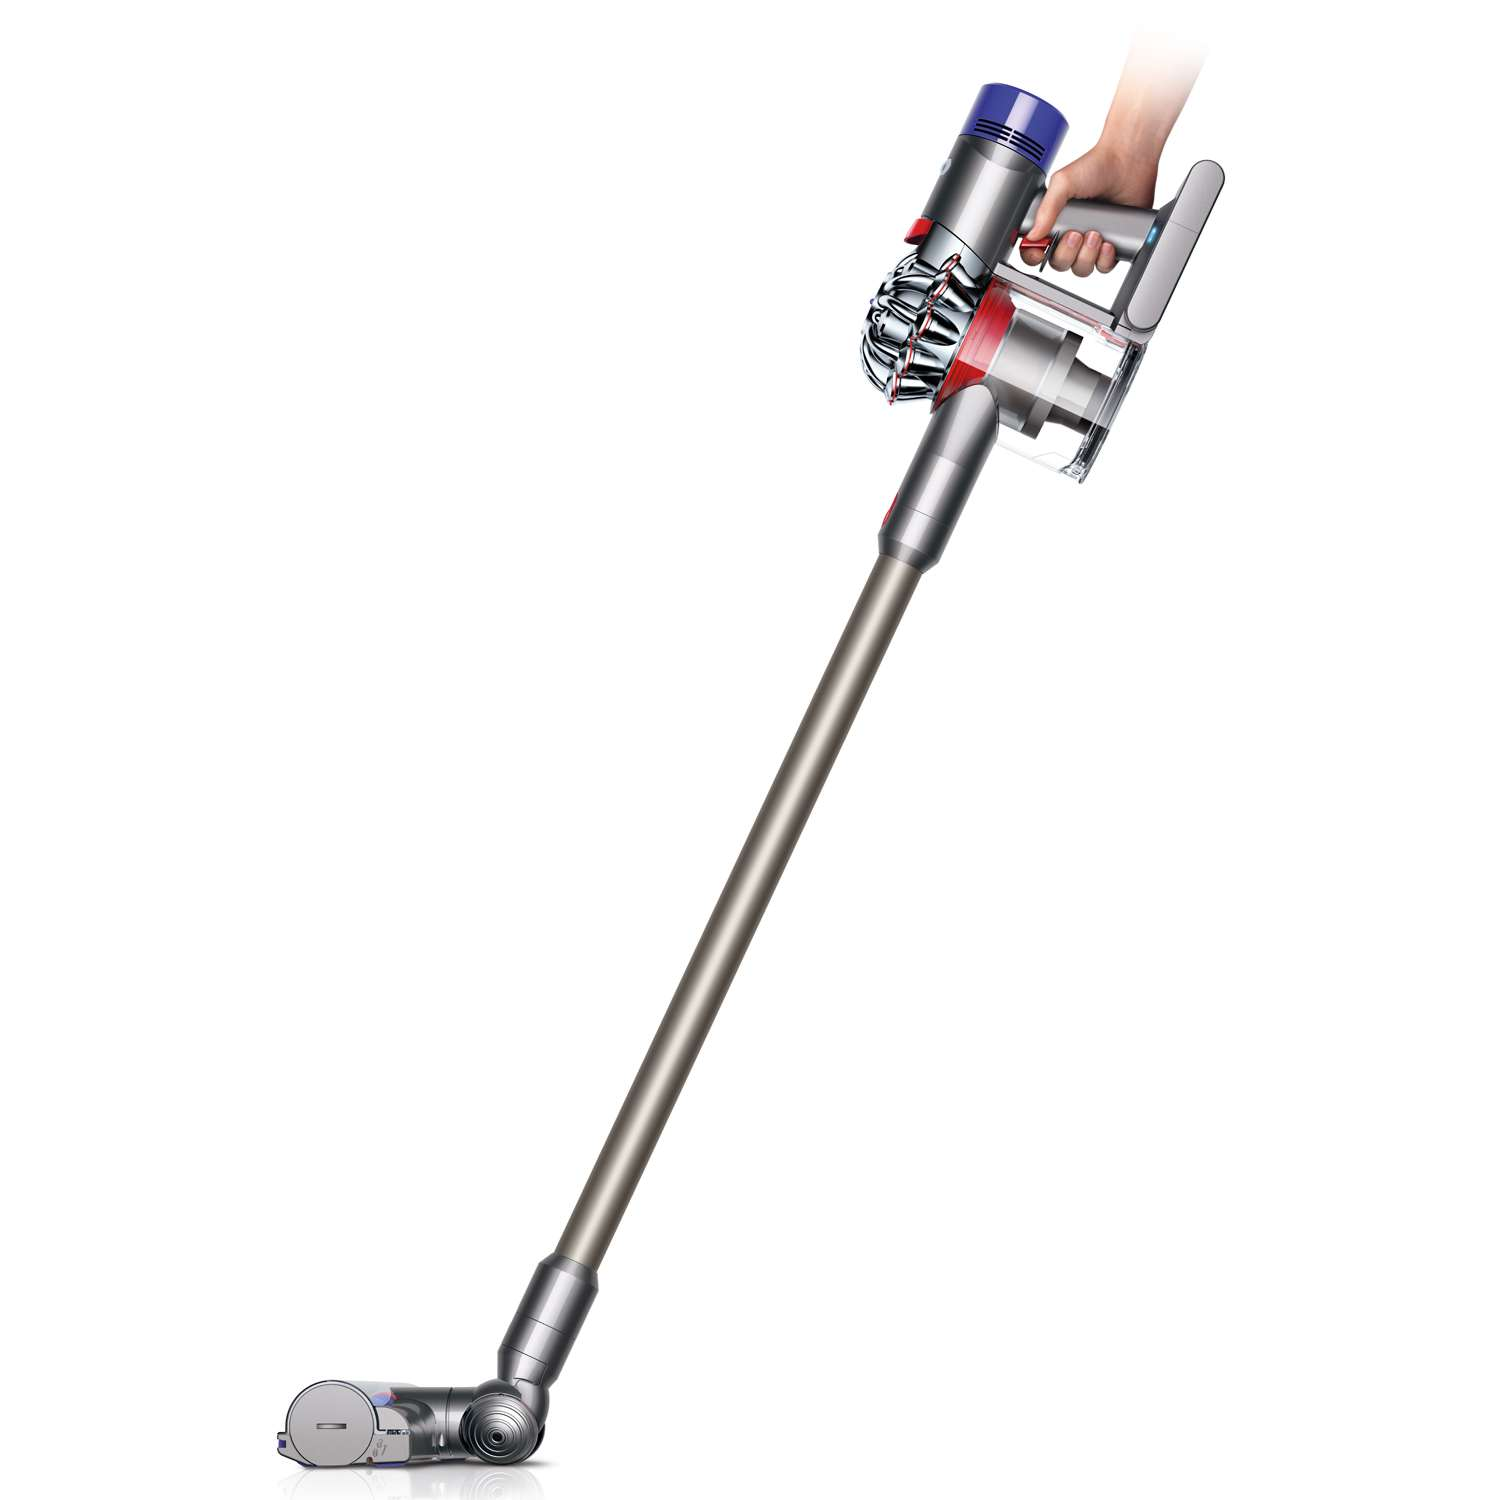 Dyson V8 Animal Cordless Rechargeable Lightweight Vacuum Cleaner In Silver